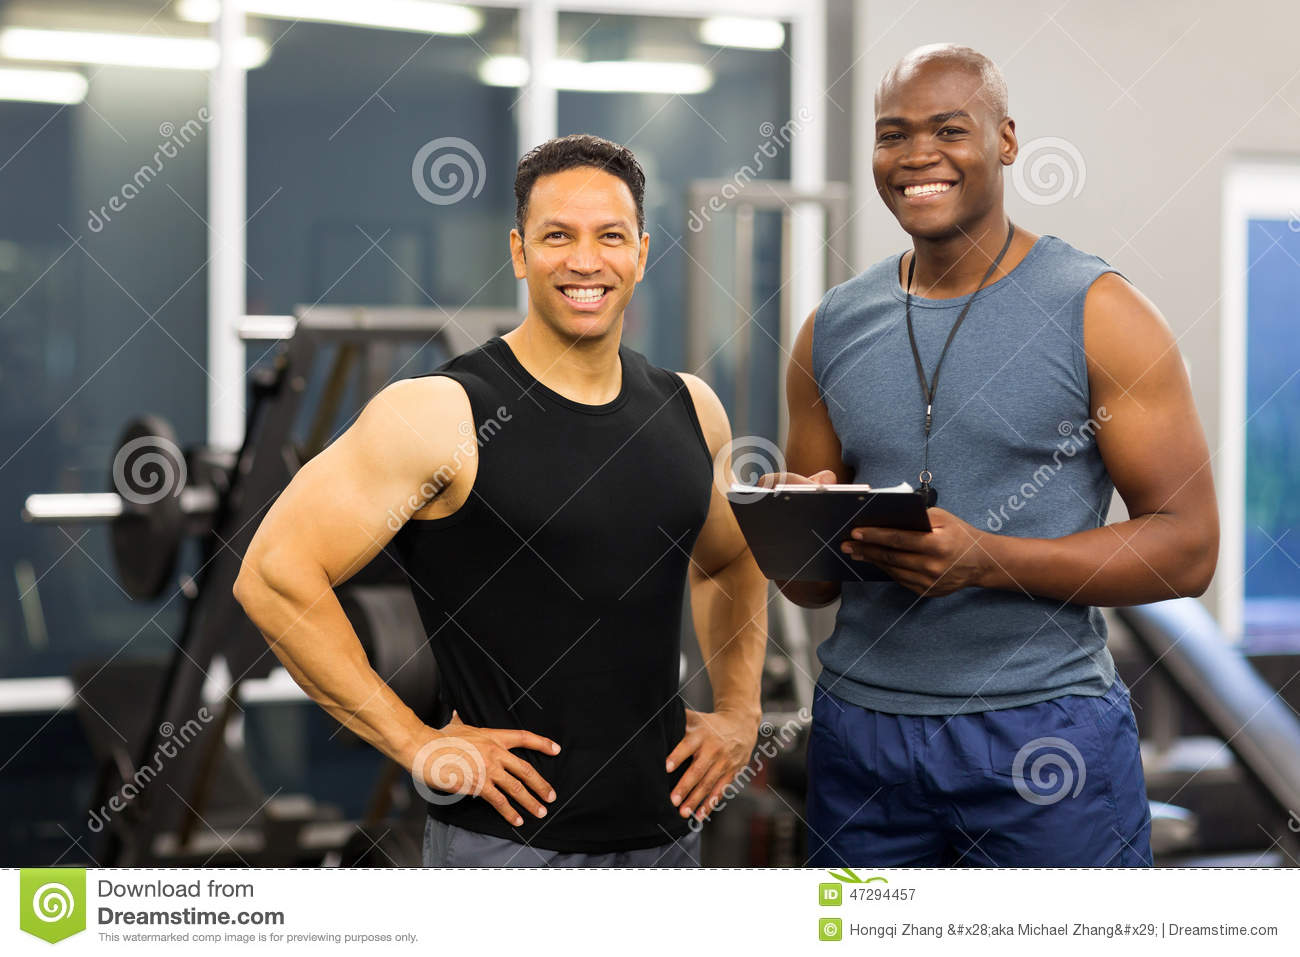 Fitness instructor client